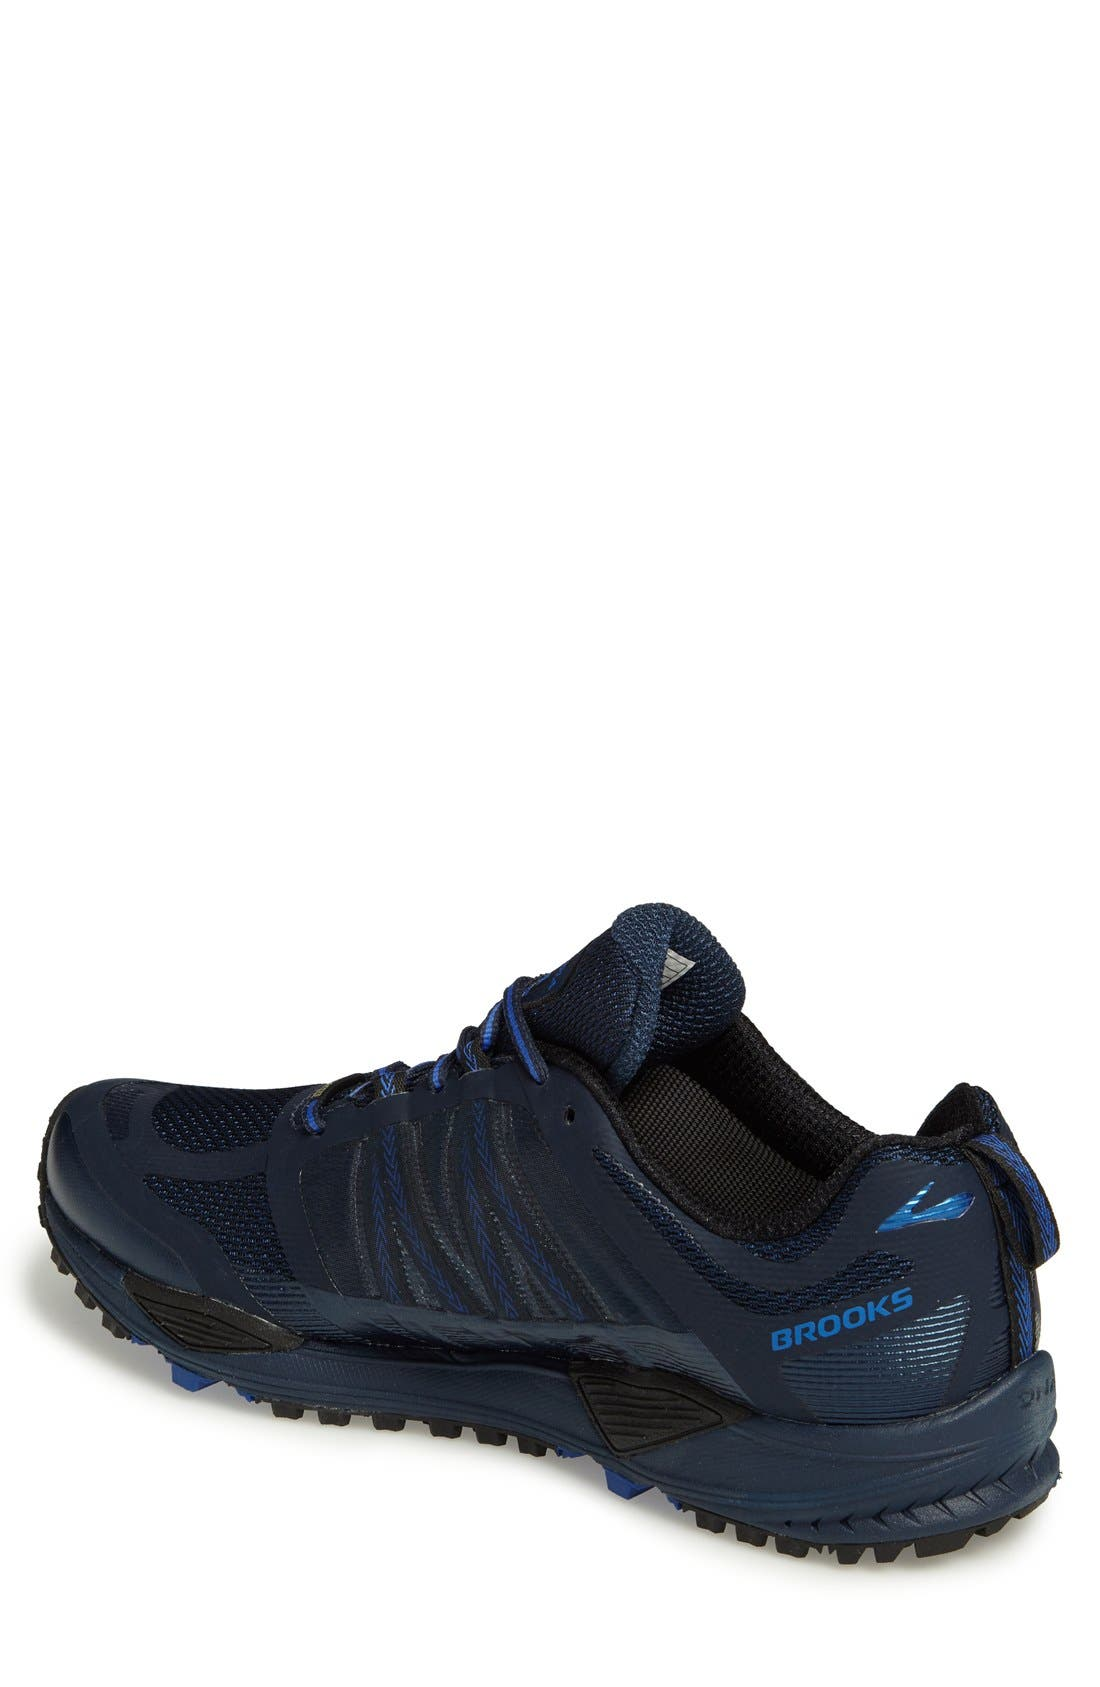 Cascadia 11 GTX Trail Running Shoe,                             Alternate thumbnail 2, color,                             Dress Blue/ Electric Blue